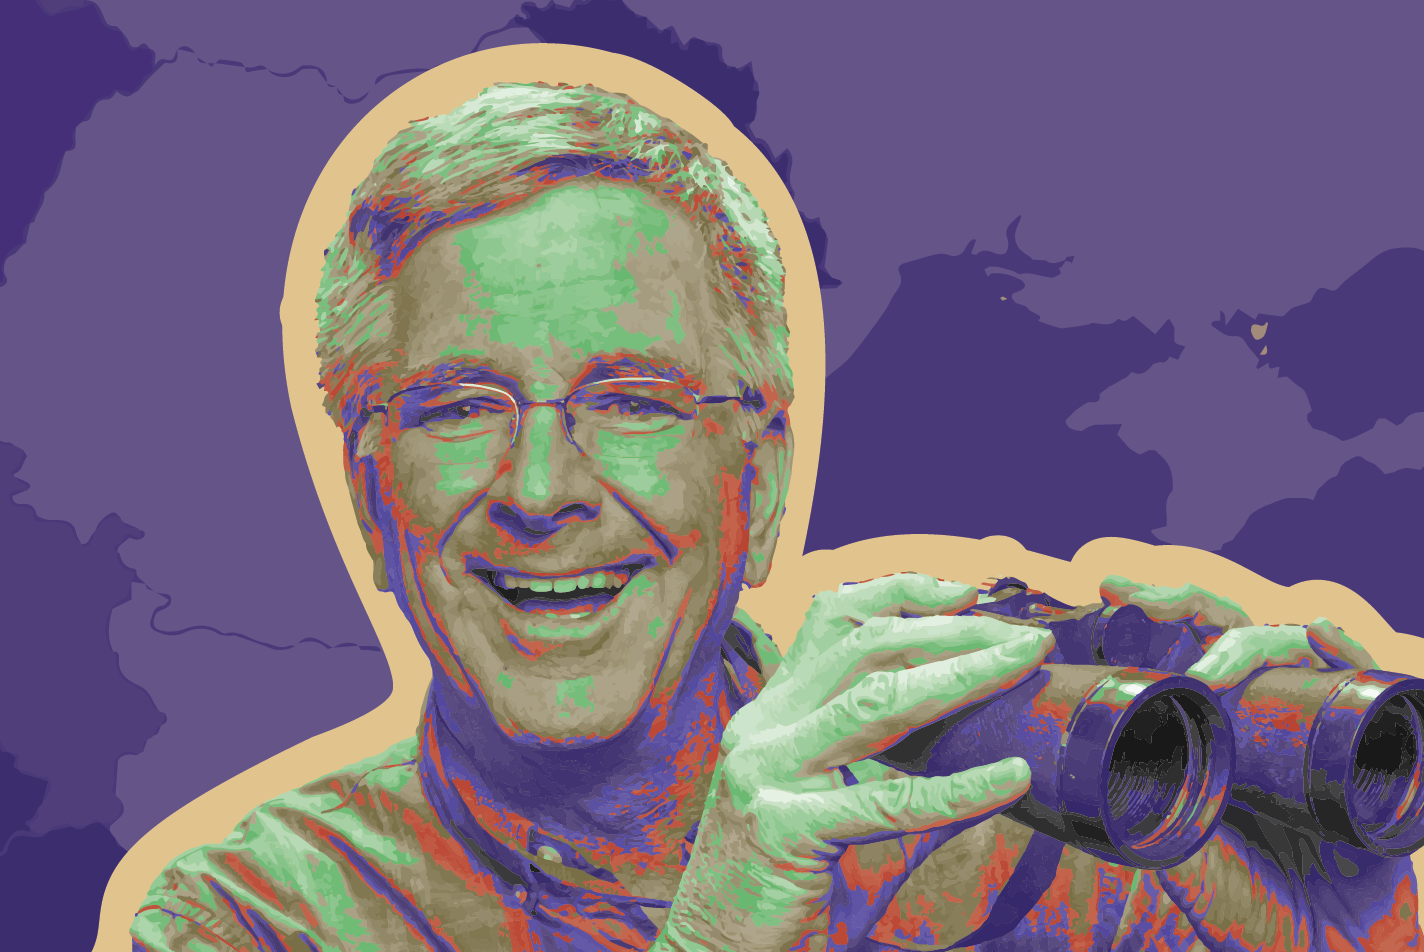 Edited photo of Rick Steves with binoculars